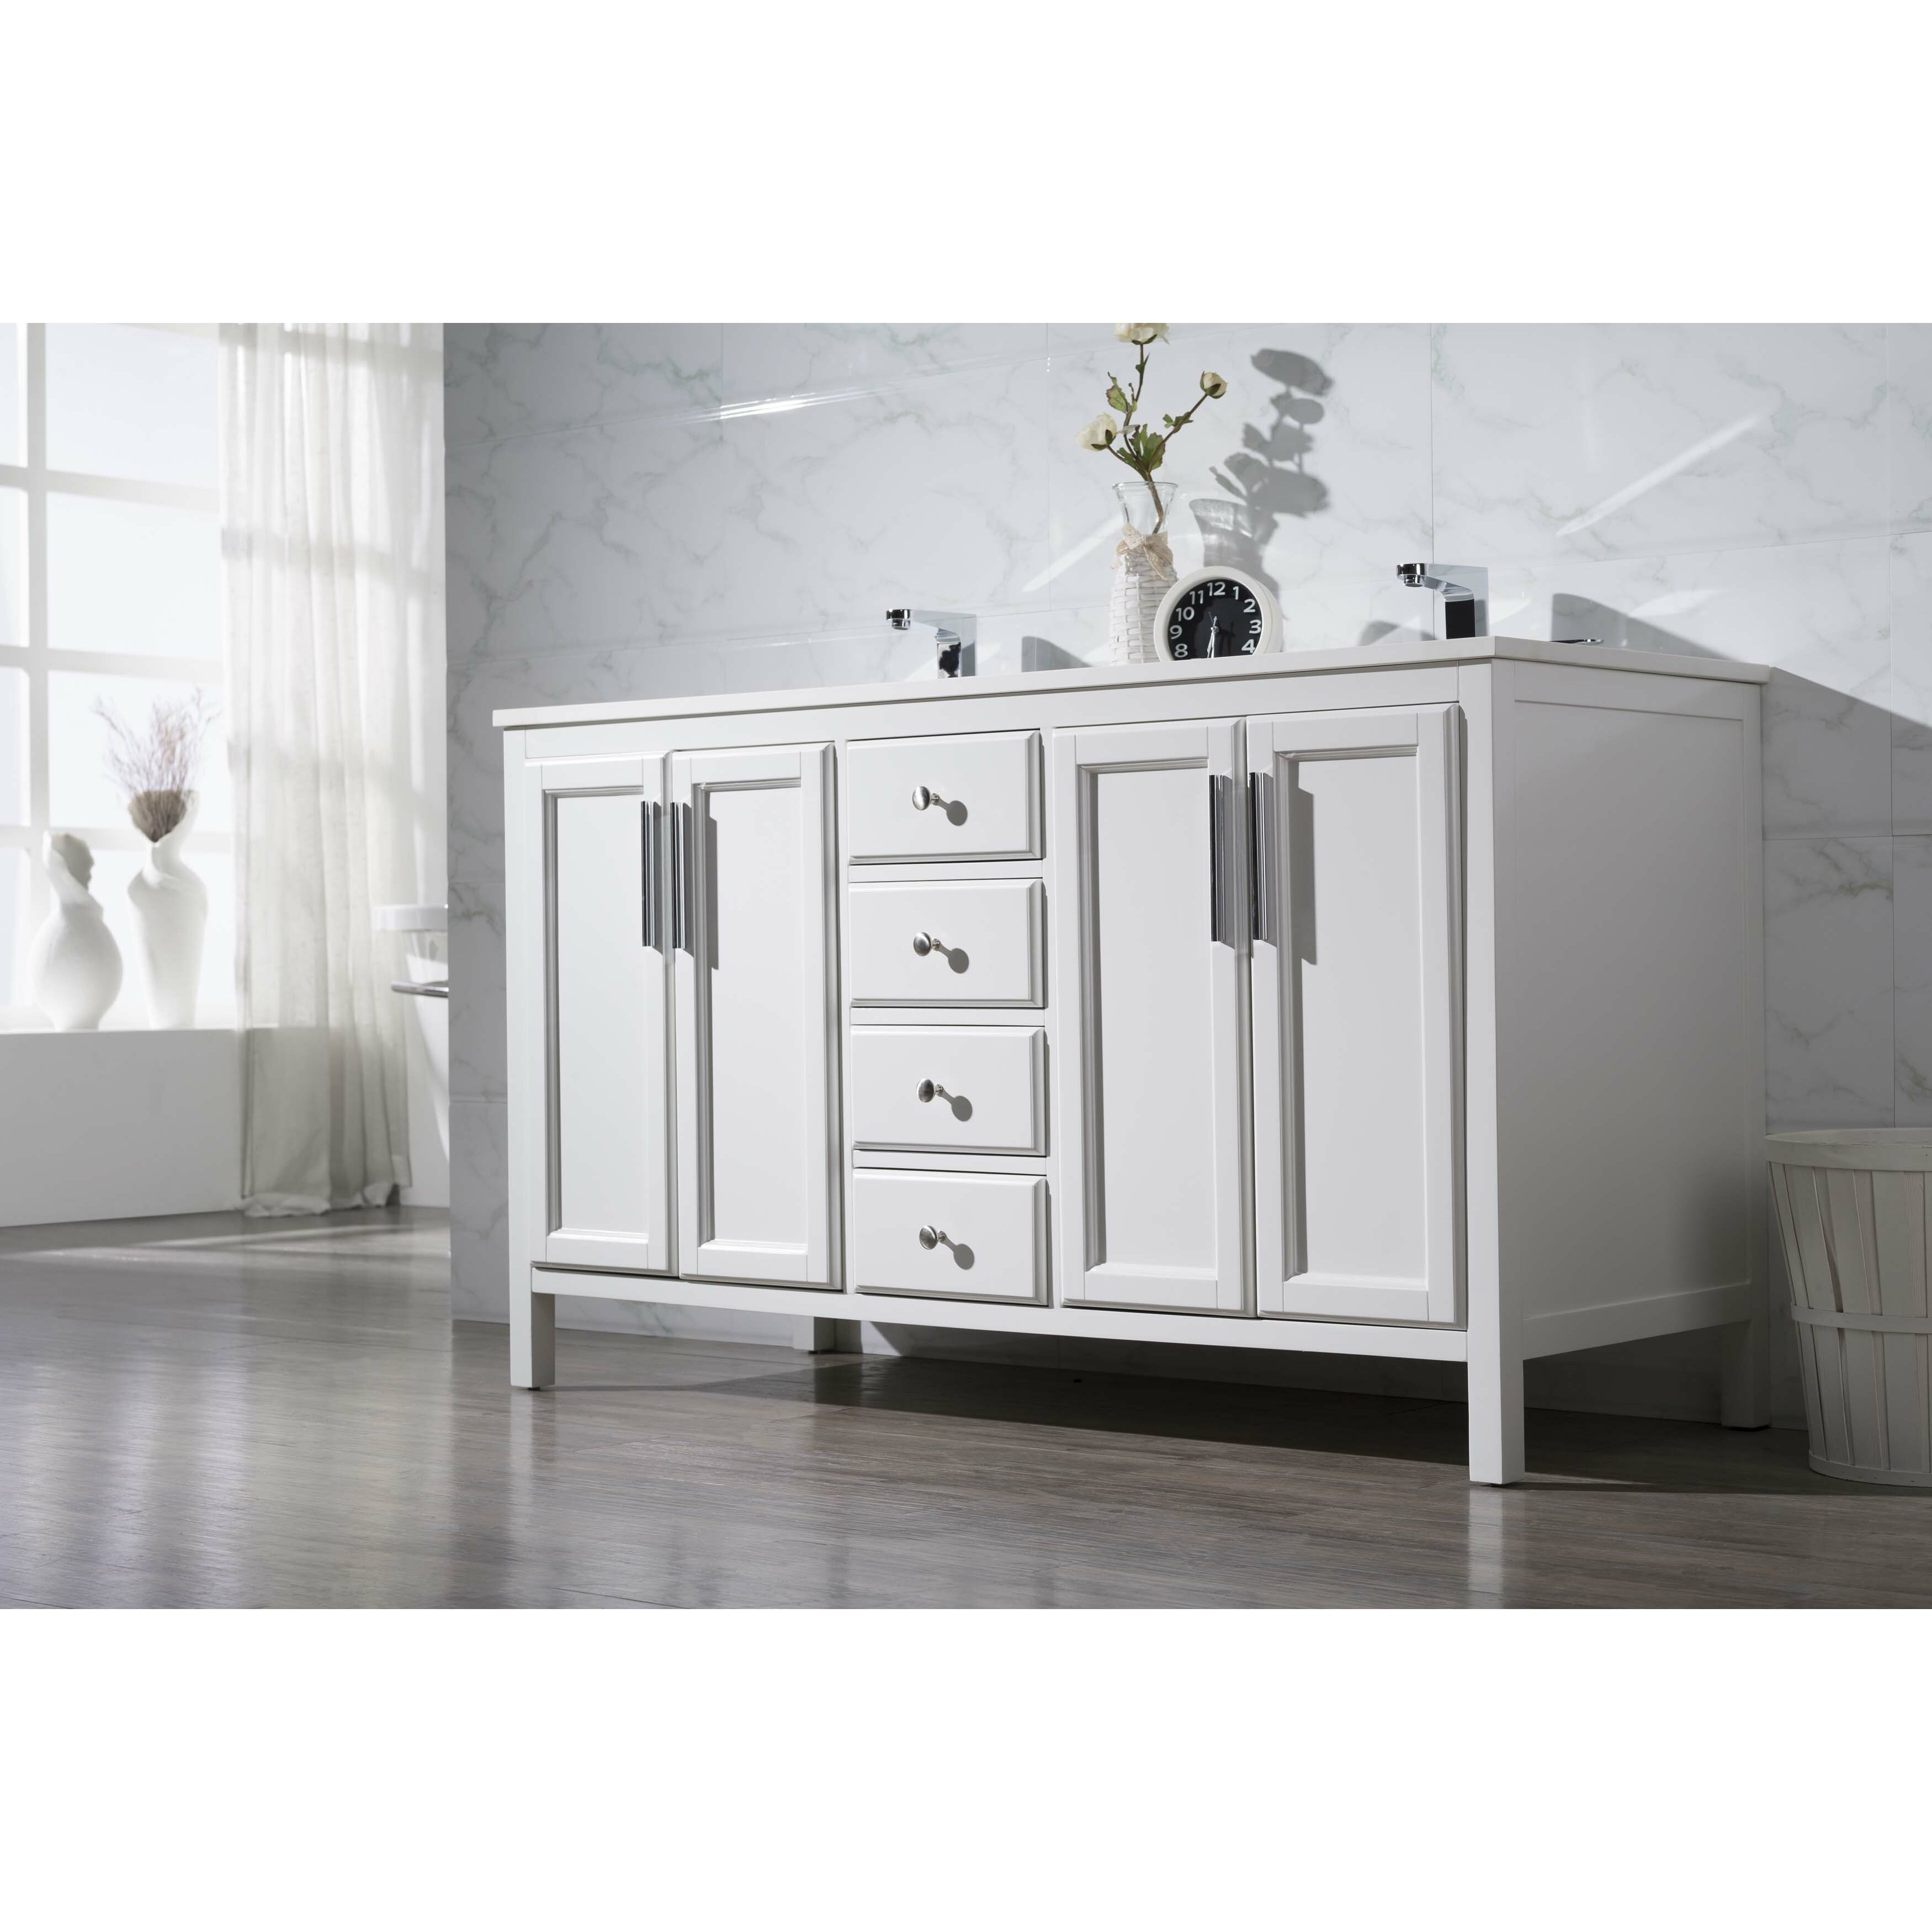 Home loft concepts emily 59 double sink bathroom vanity - 52 inch bathroom vanity double sink ...